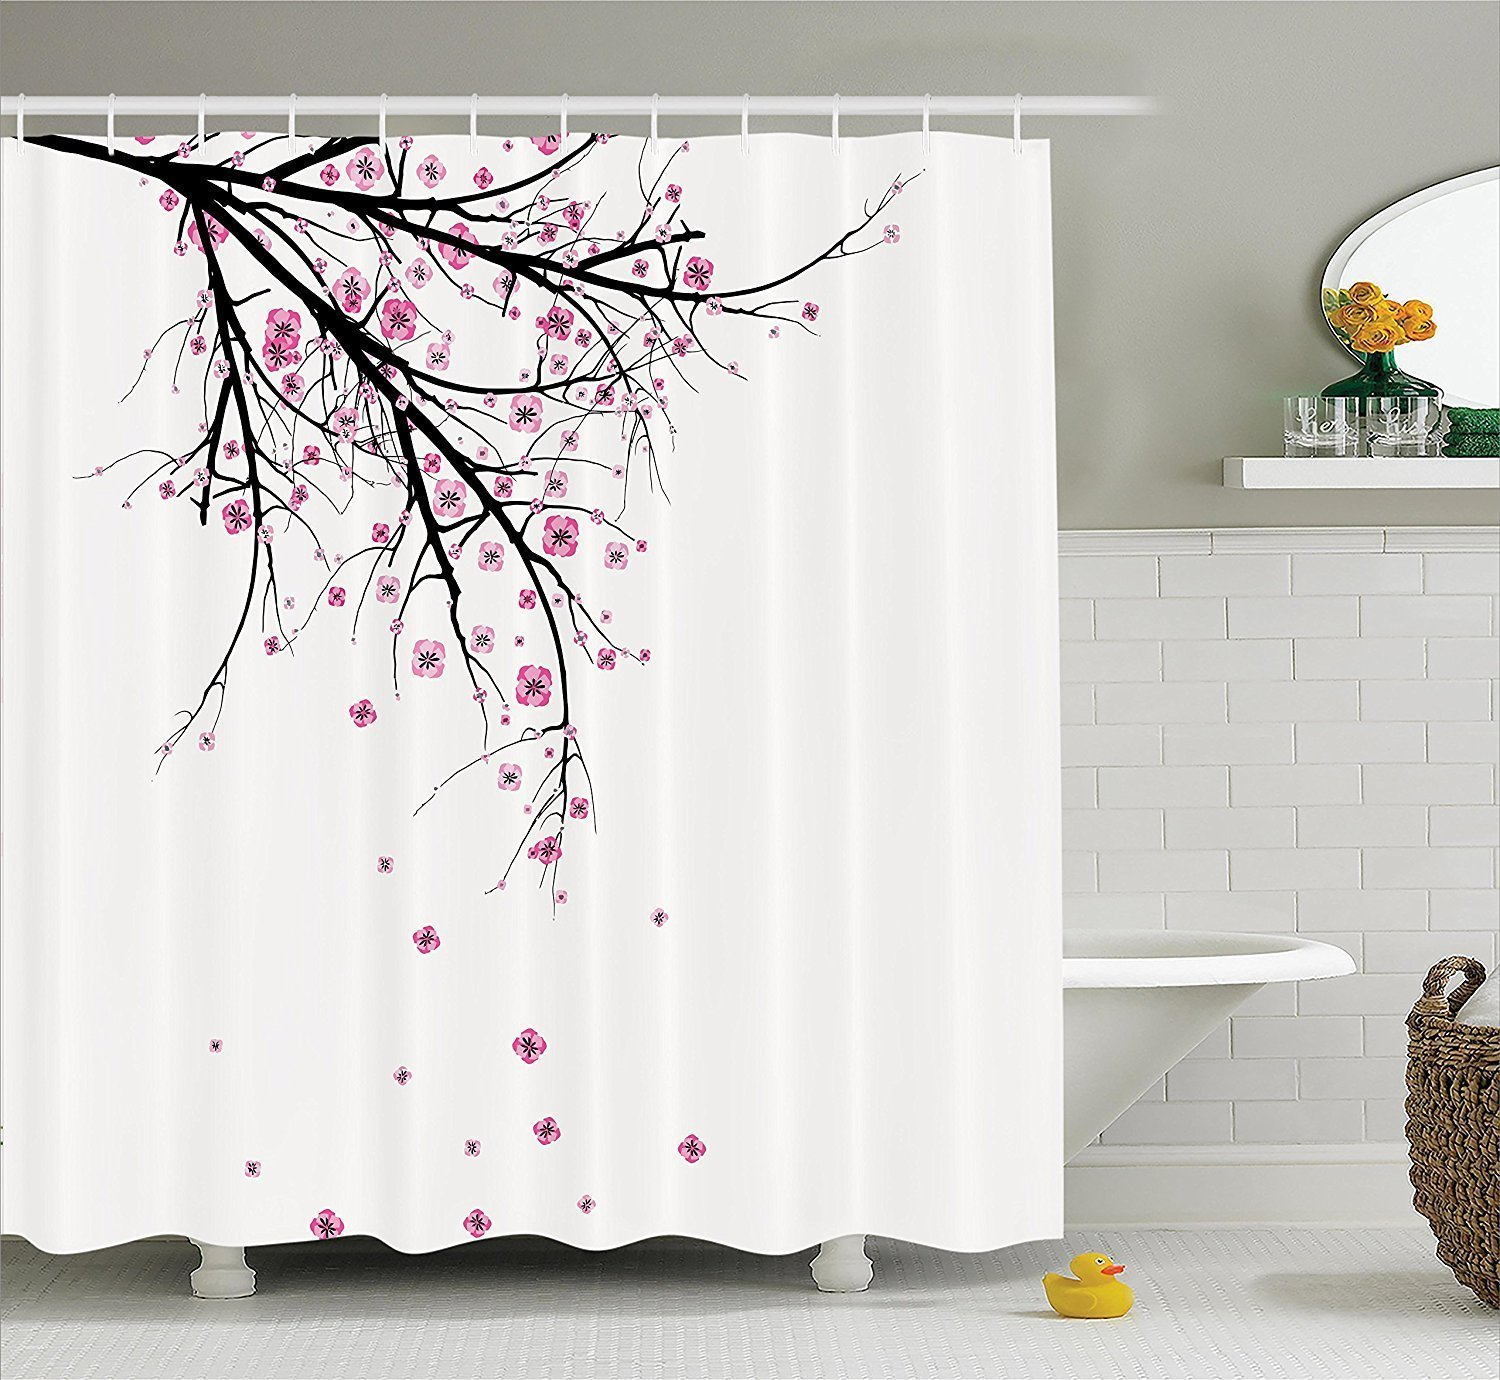 House Decor Shower Curtain Set By YOUHOME Cherry Blossoming Falling Petals Flowers Springtime Park Simple Illustration Print Bathroom Accessories